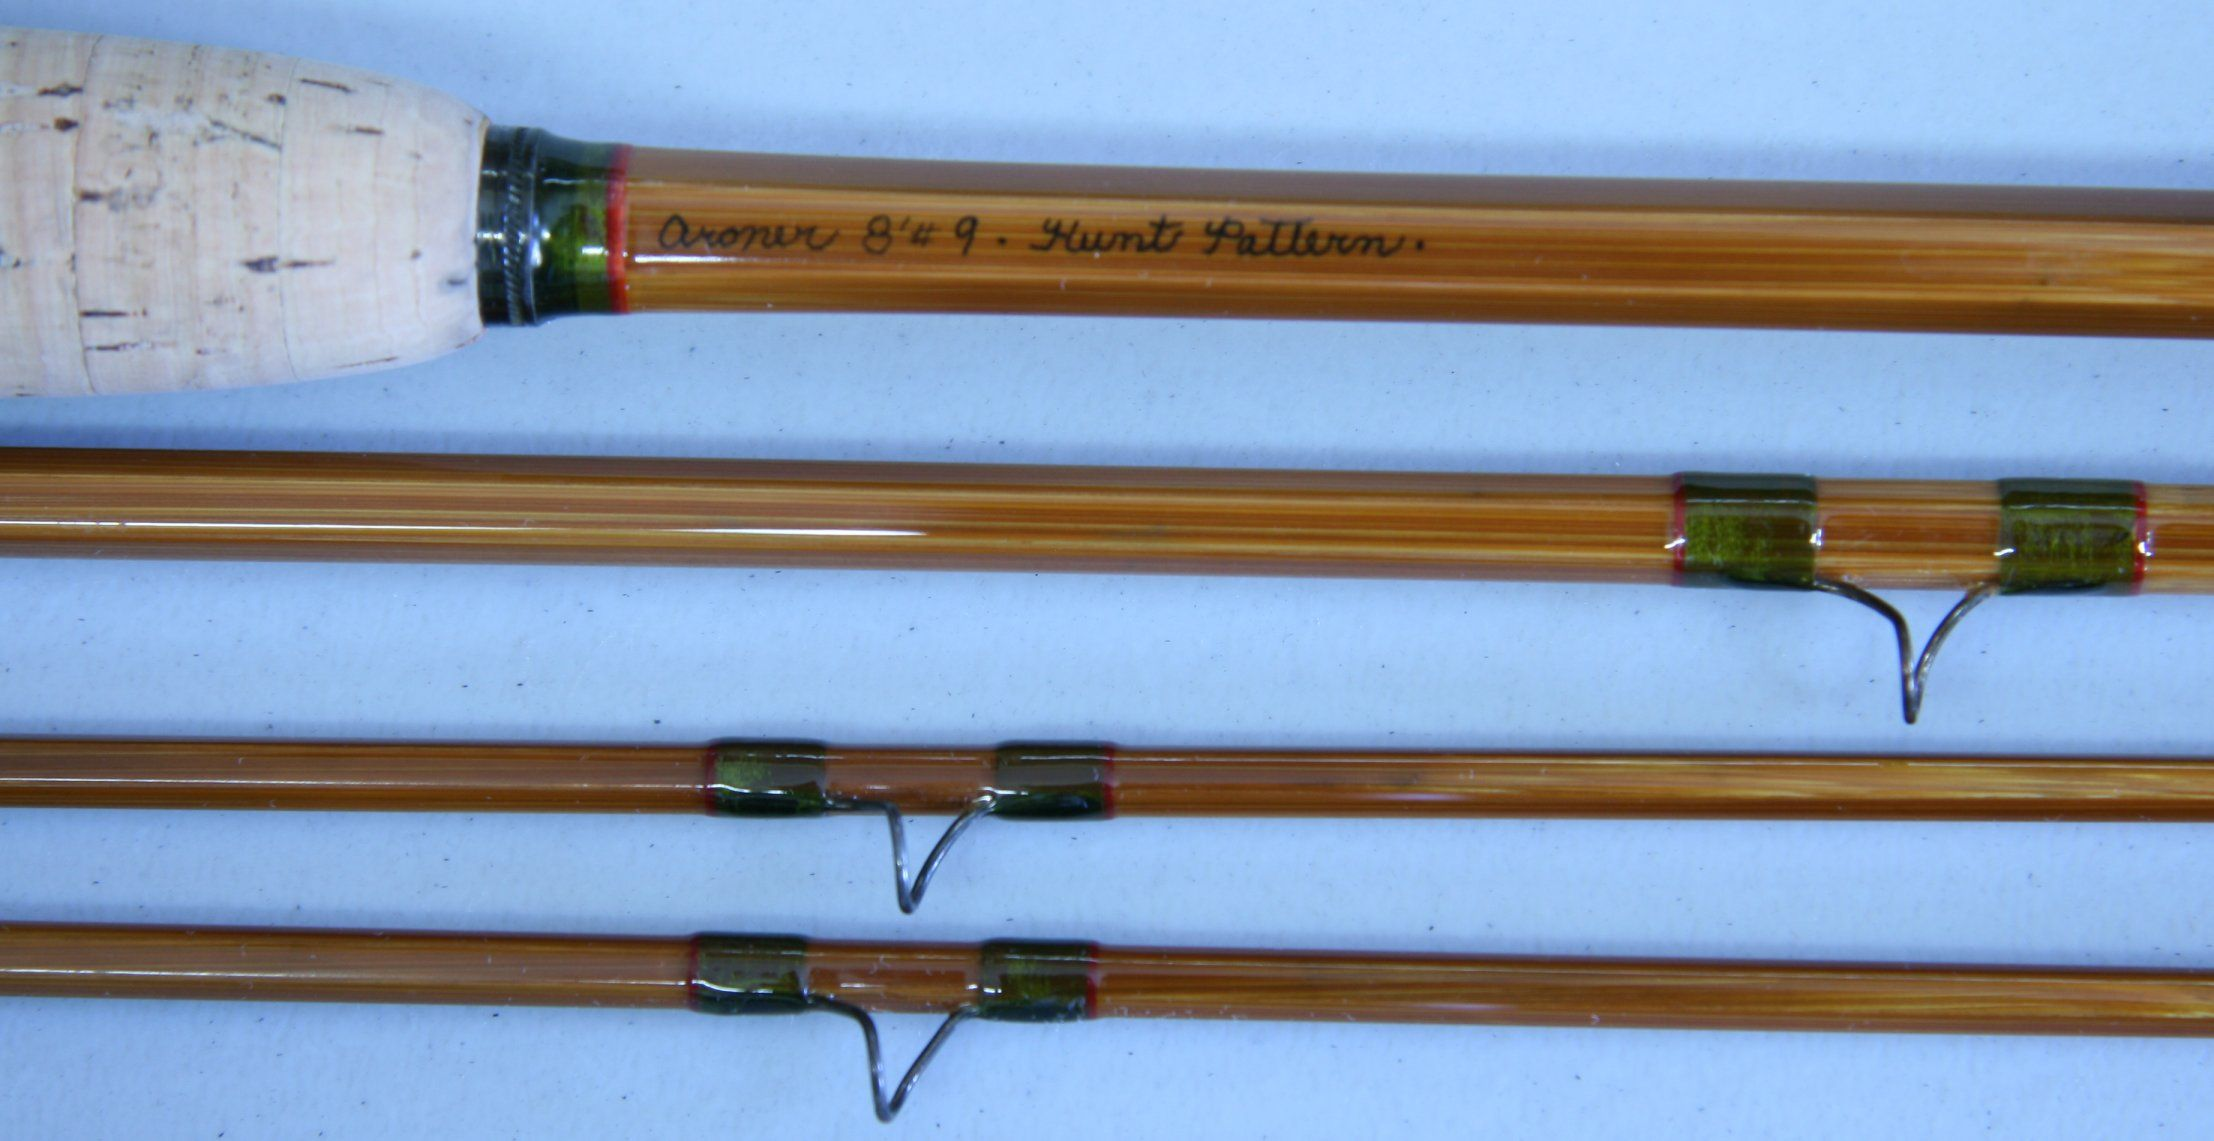 Marc Aroner 8 3 2 Hunt Pattern Line Weight 9 Weighing 6 2 Oz Bamboo Fly Rod Fly Fishing Rods Bamboo Rods